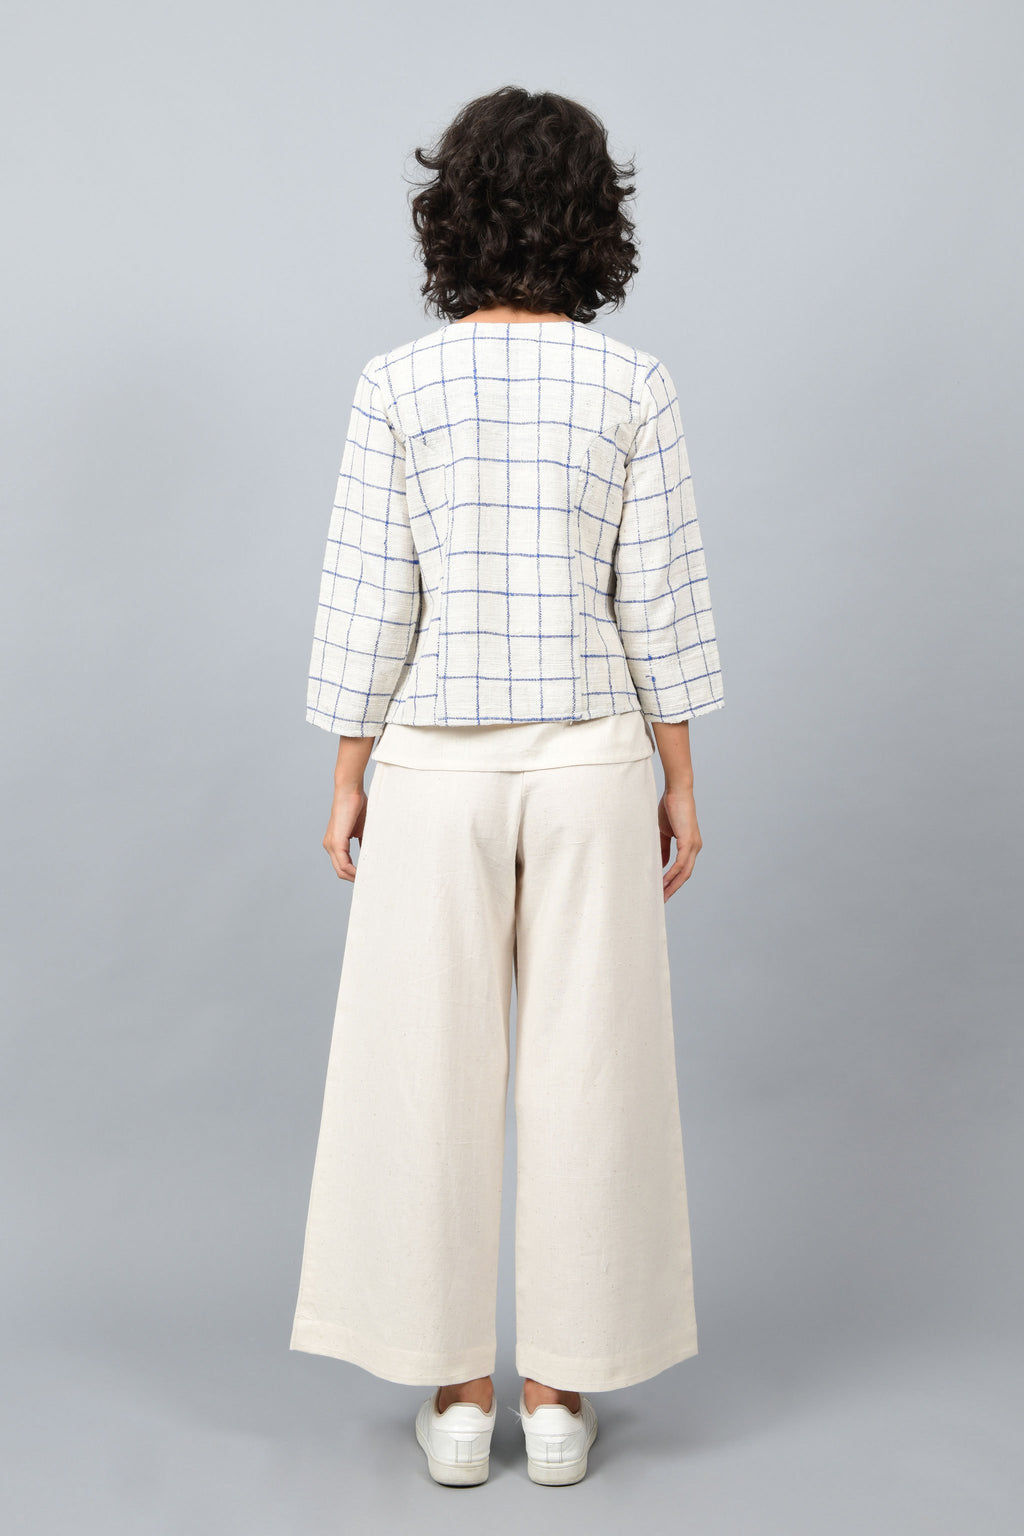 Model showing the back of open short jacket in thicker white handspun and handwoven khadi cotton with big blue checks over off-white spaghetti top and off-white palazzos paired with white sneakers.